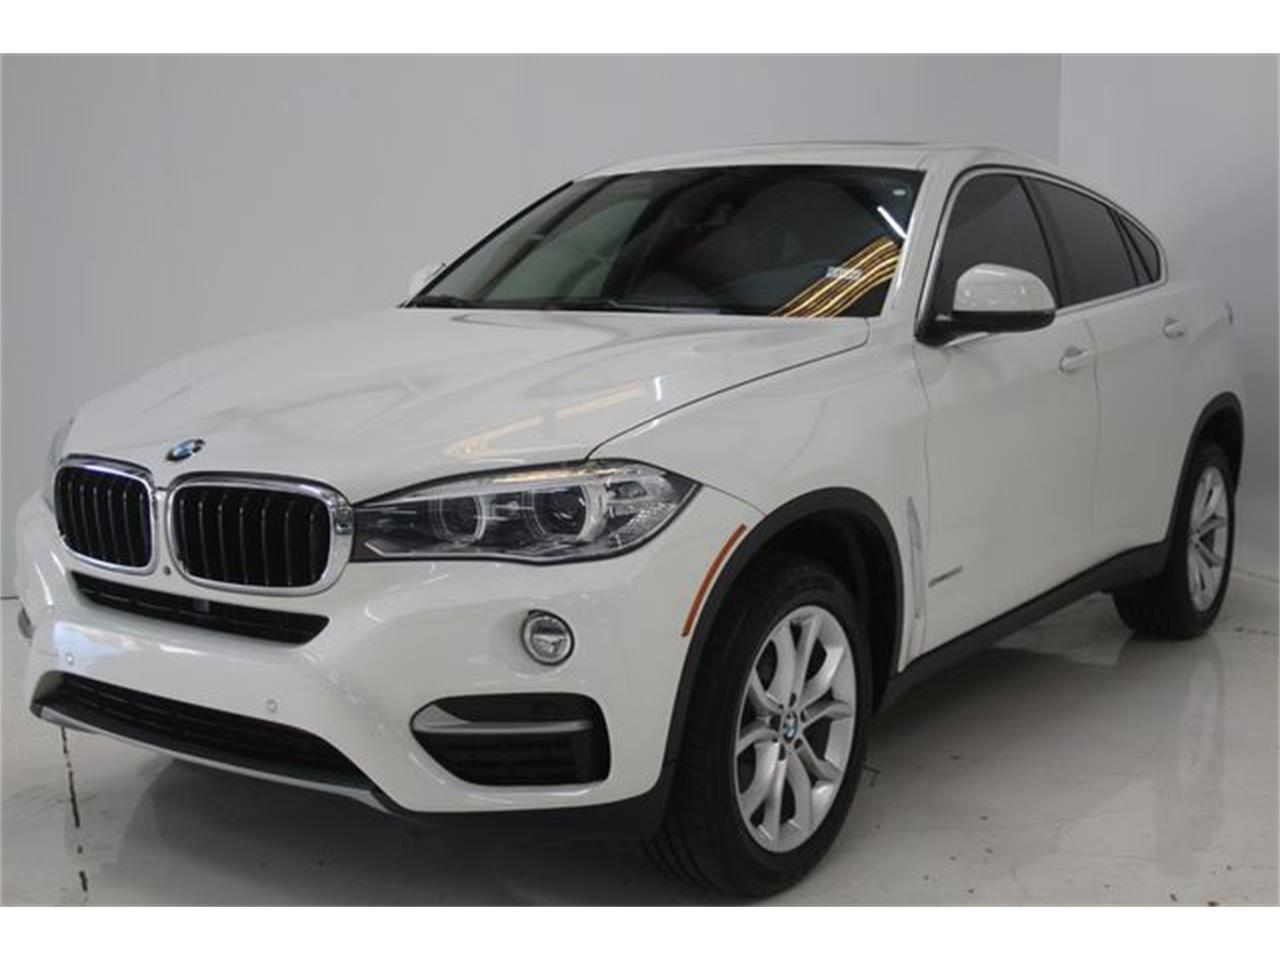 for sale 2015 bmw x6 in houston, texas cars - houston, tx at geebo